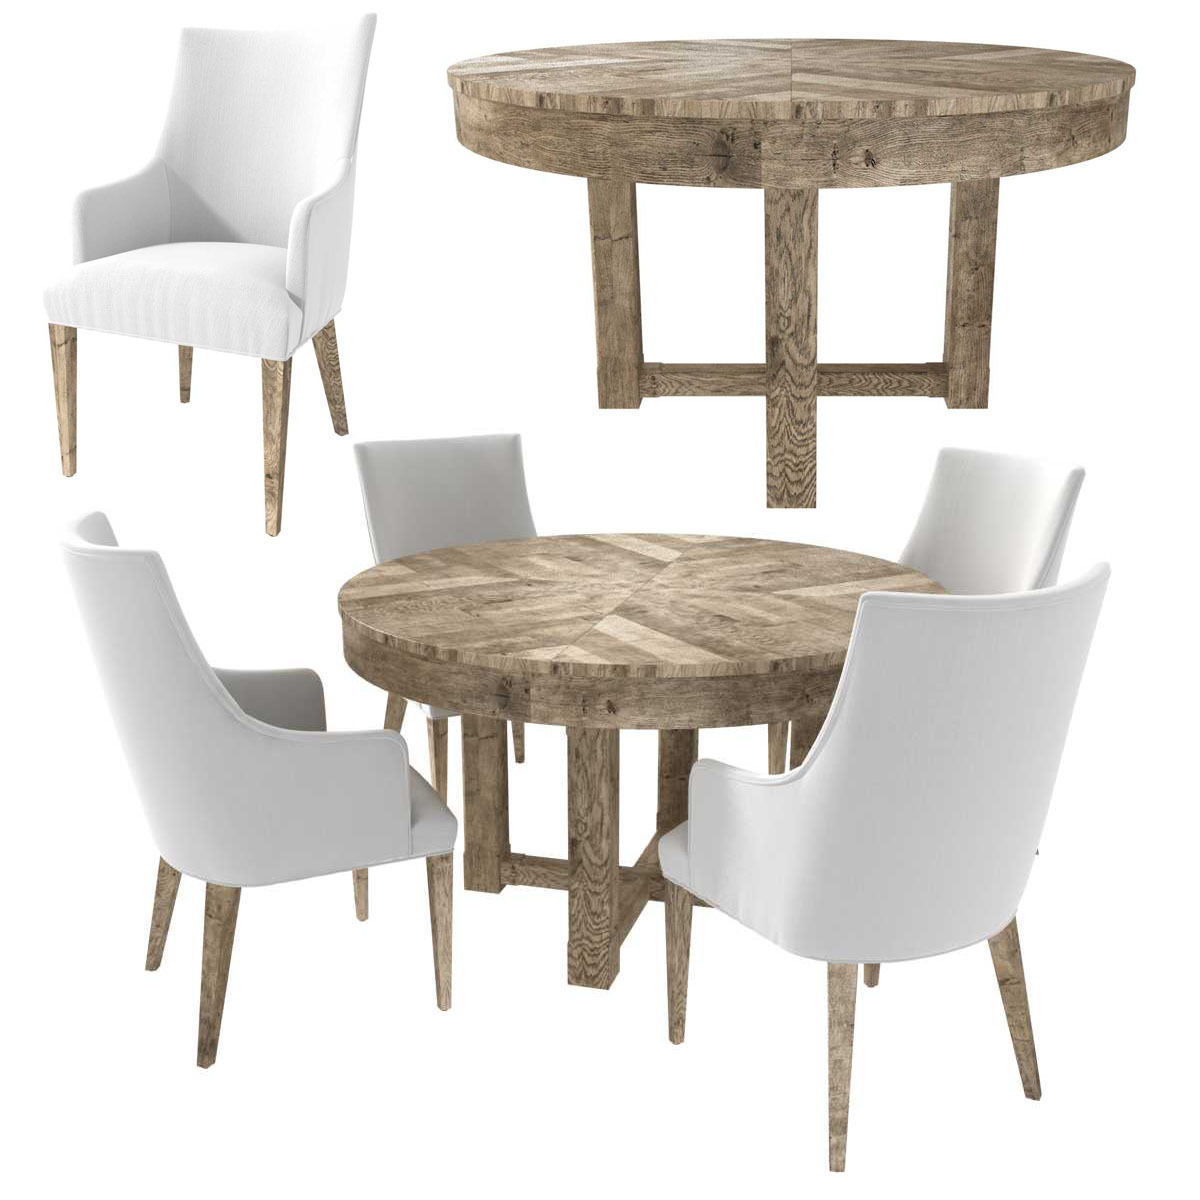 Restoration Hardware ELLA ARMCHAIR and CAYDEN  DINING TABLE